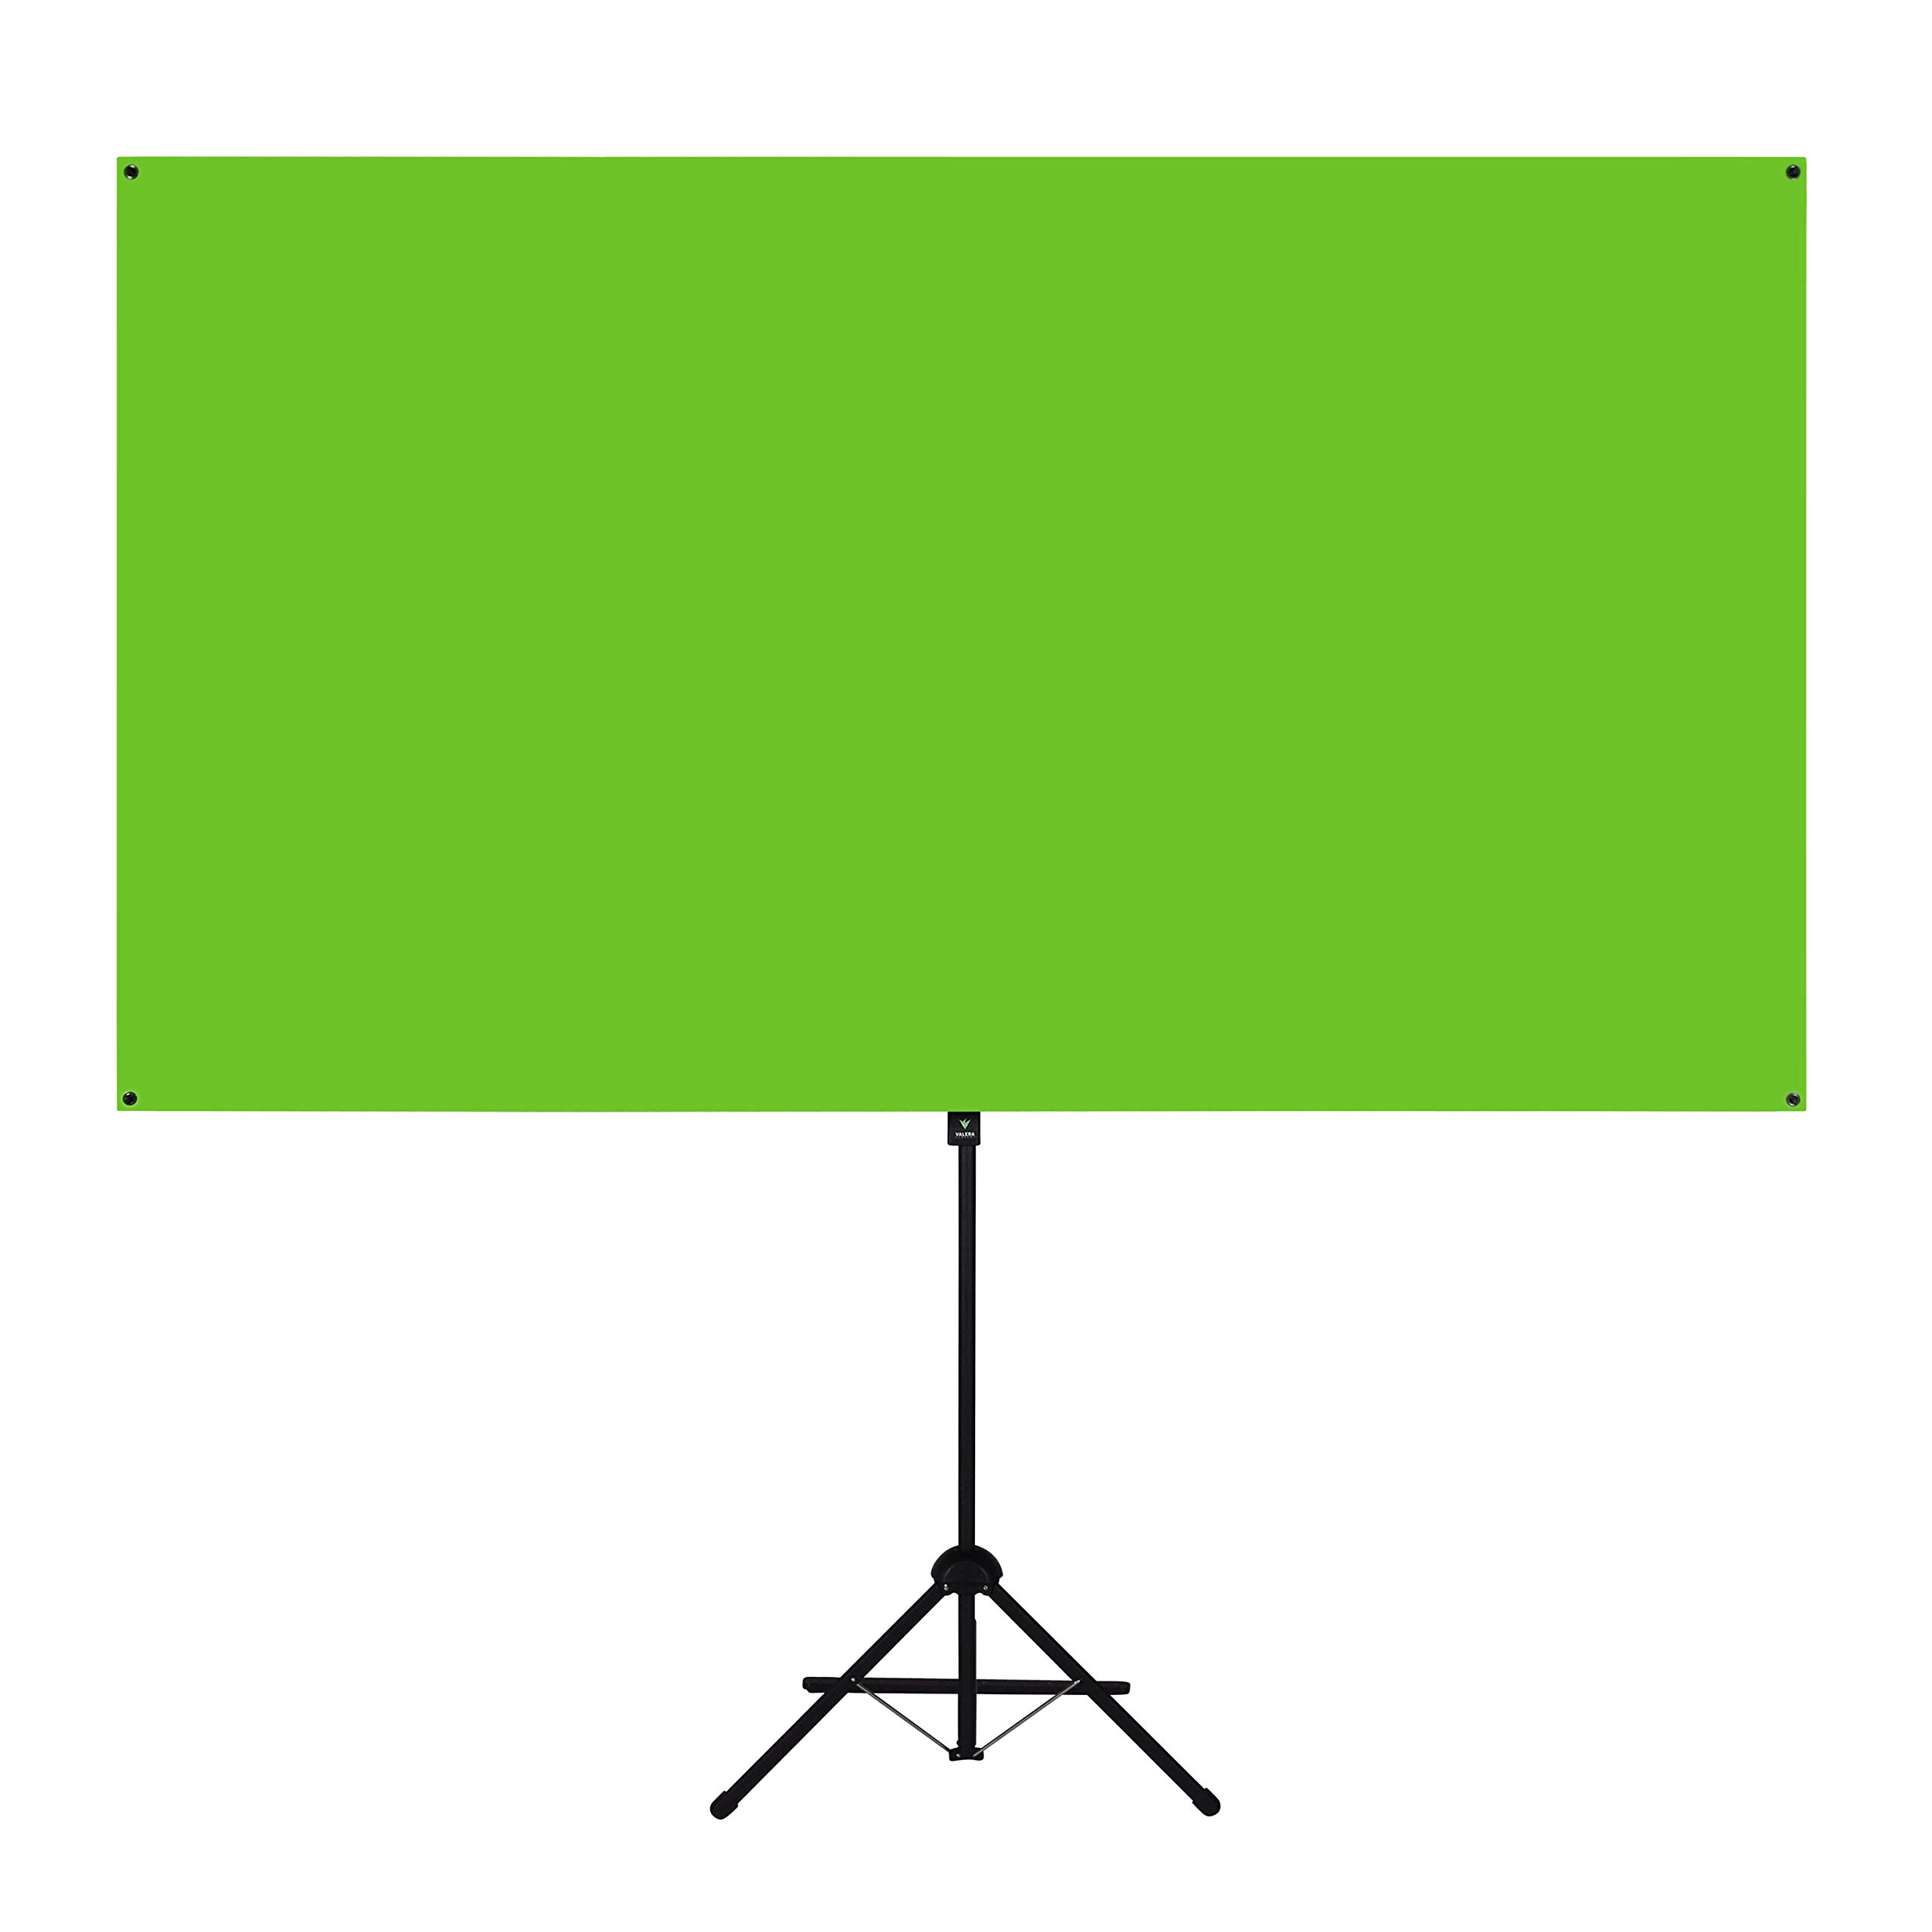 Valera Explorer 90 Inch Portable Green Screen for Streaming and Videos - Mounts on Tripod and Wall | Only 8 lbs | 2 min Setup | 16:9 Format | ChromaBoost Fabric with High Vibrancy for Low Lighting by On the Go Screens